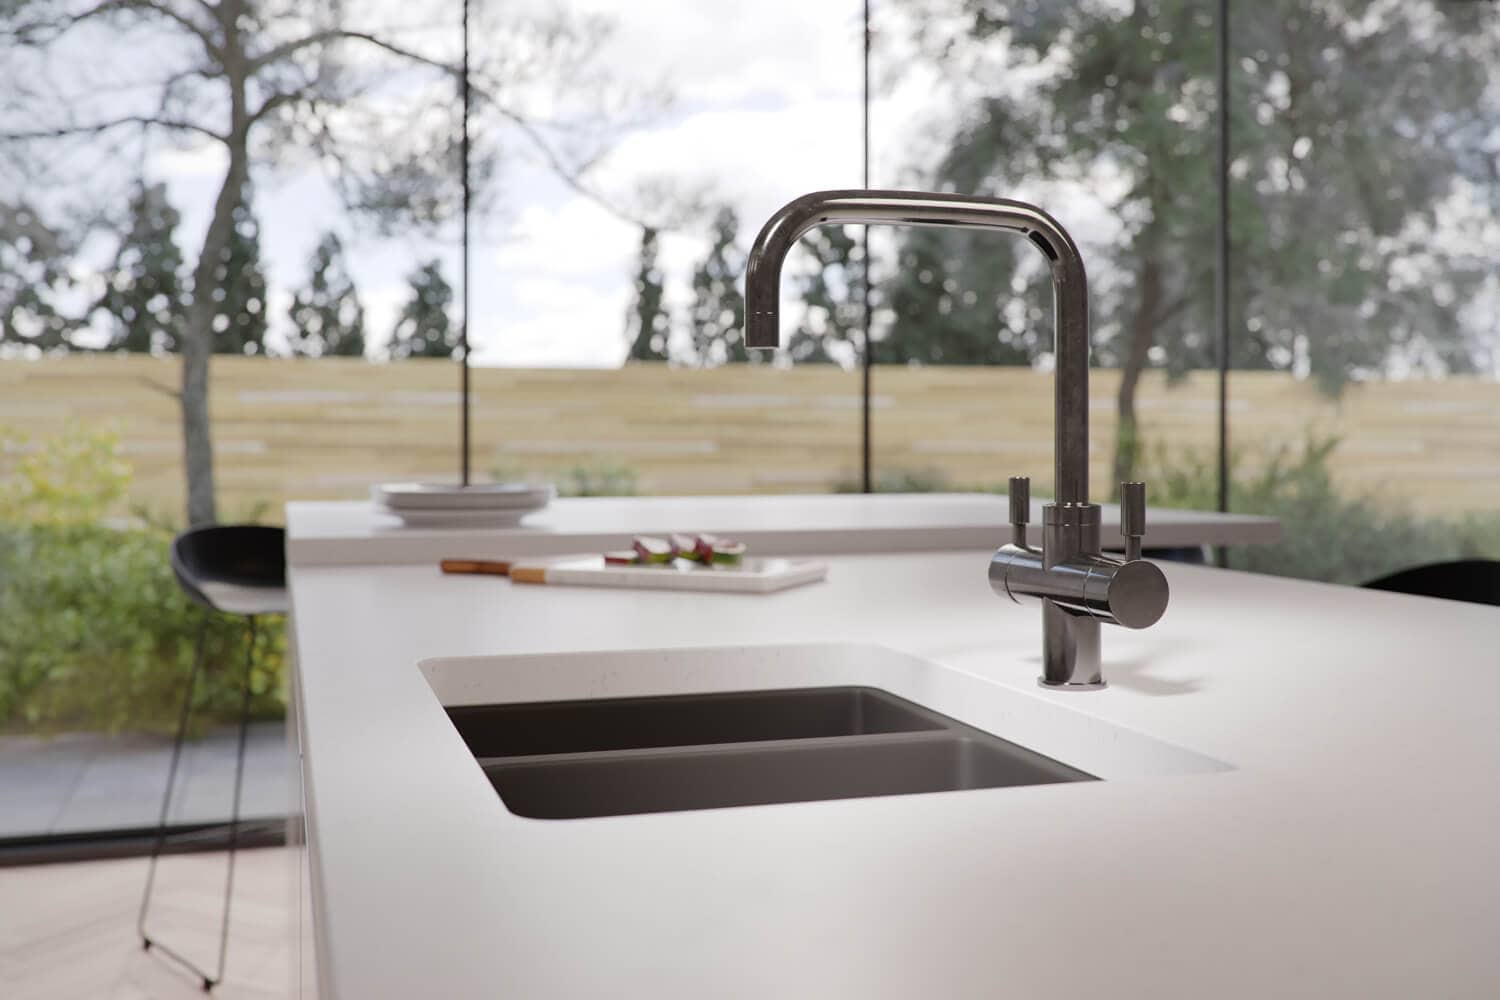 Close up of kitchen 3D rendering showing tap product CGI - smooth white counter tops and pale colour scheme, with large windows in the background showing the garden.